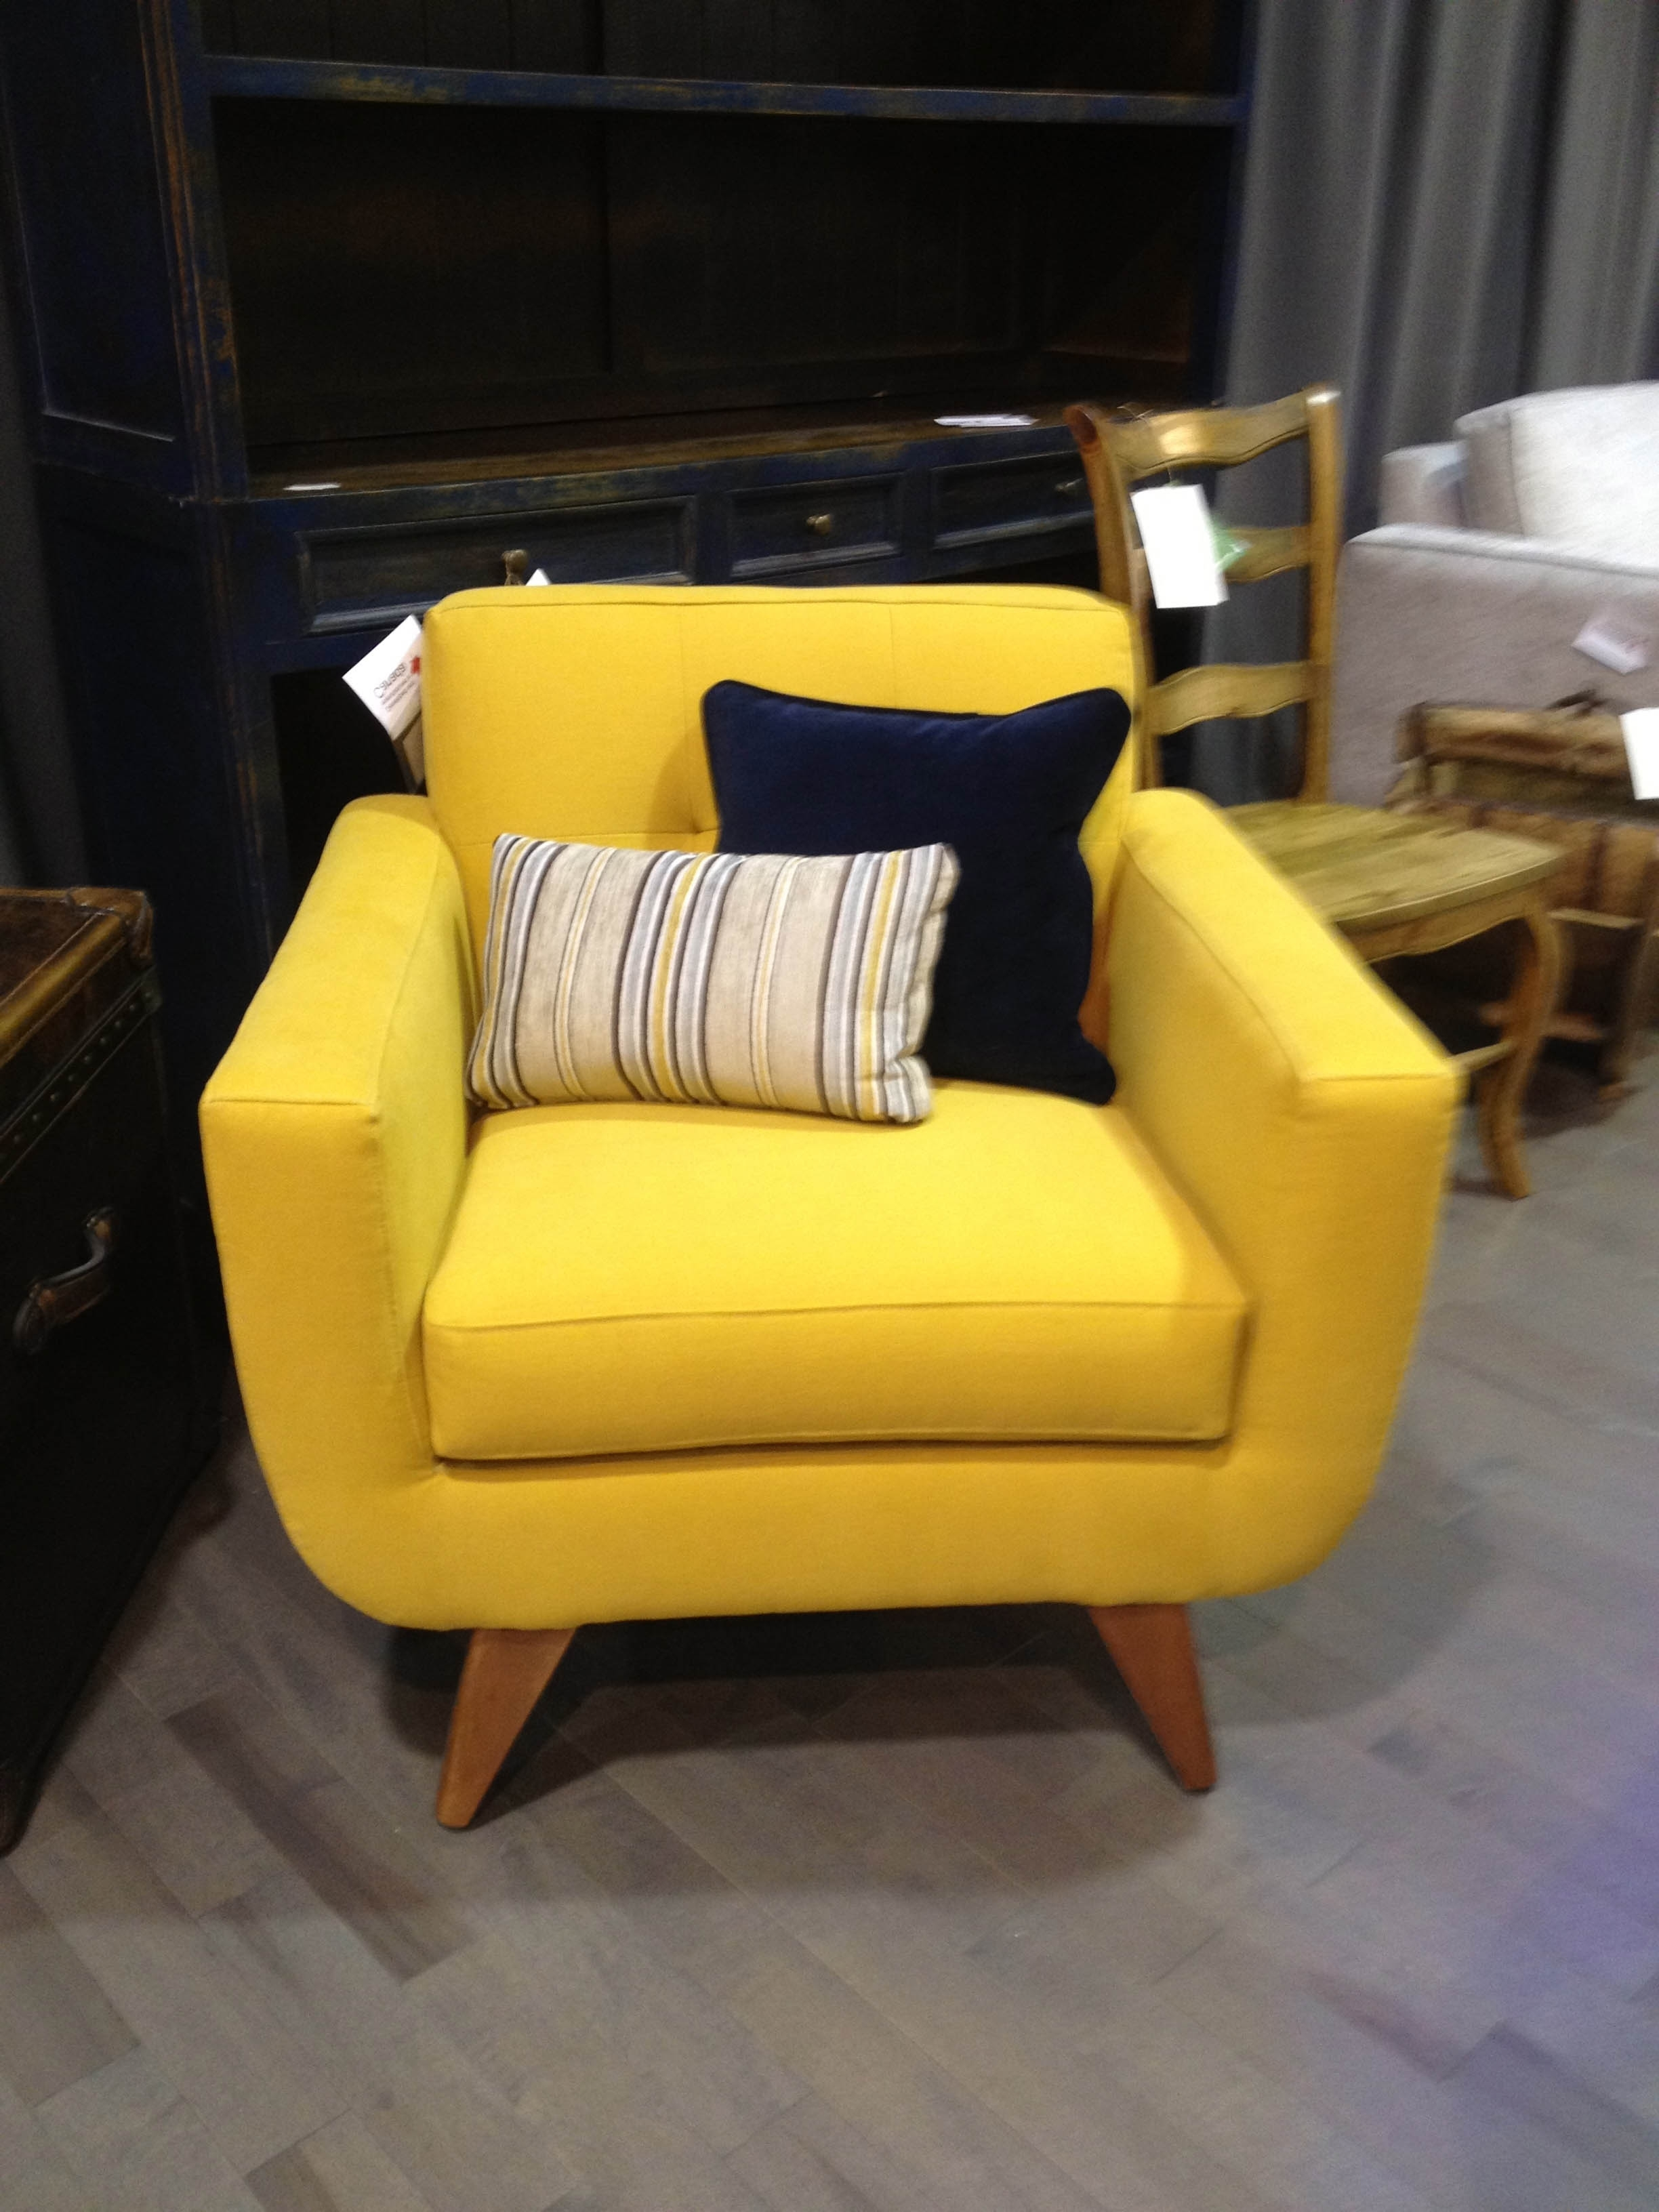 Most Popular Full Size Of Yellow Base Chair Sofa Single Piece Wood Legs Dark Throughout Yellow Sofa Chairs (View 2 of 15)